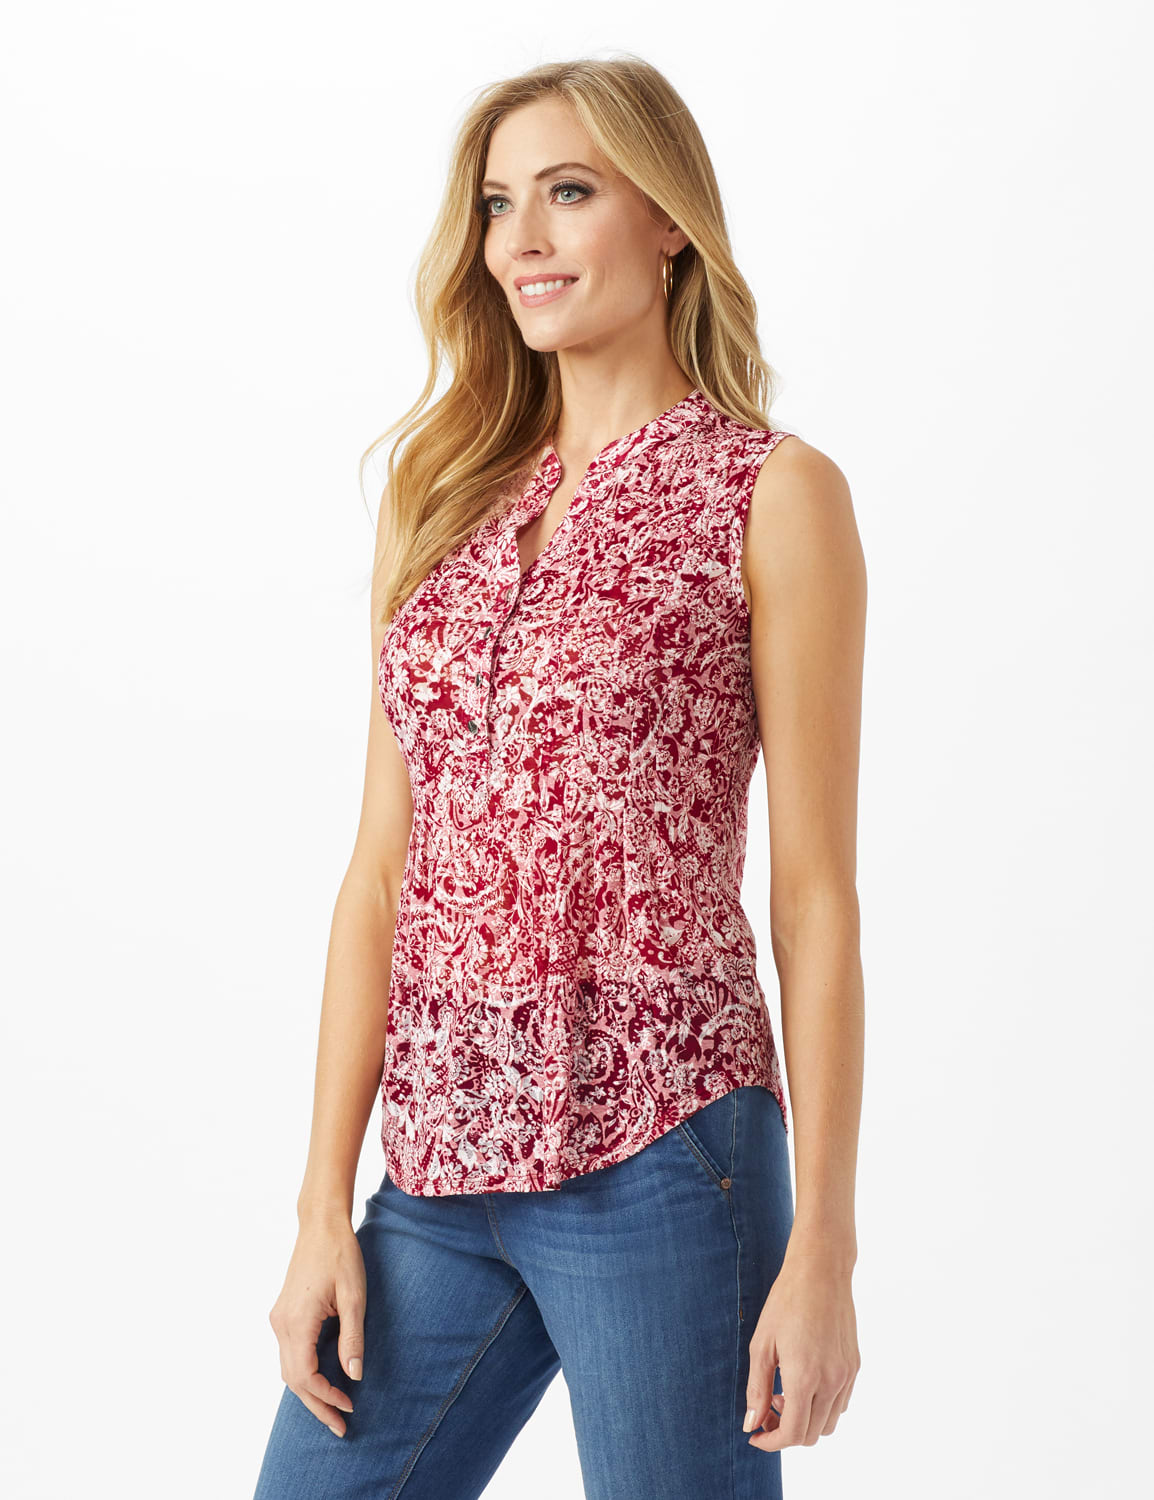 Floral Popover Knit Top - Red/White - Front